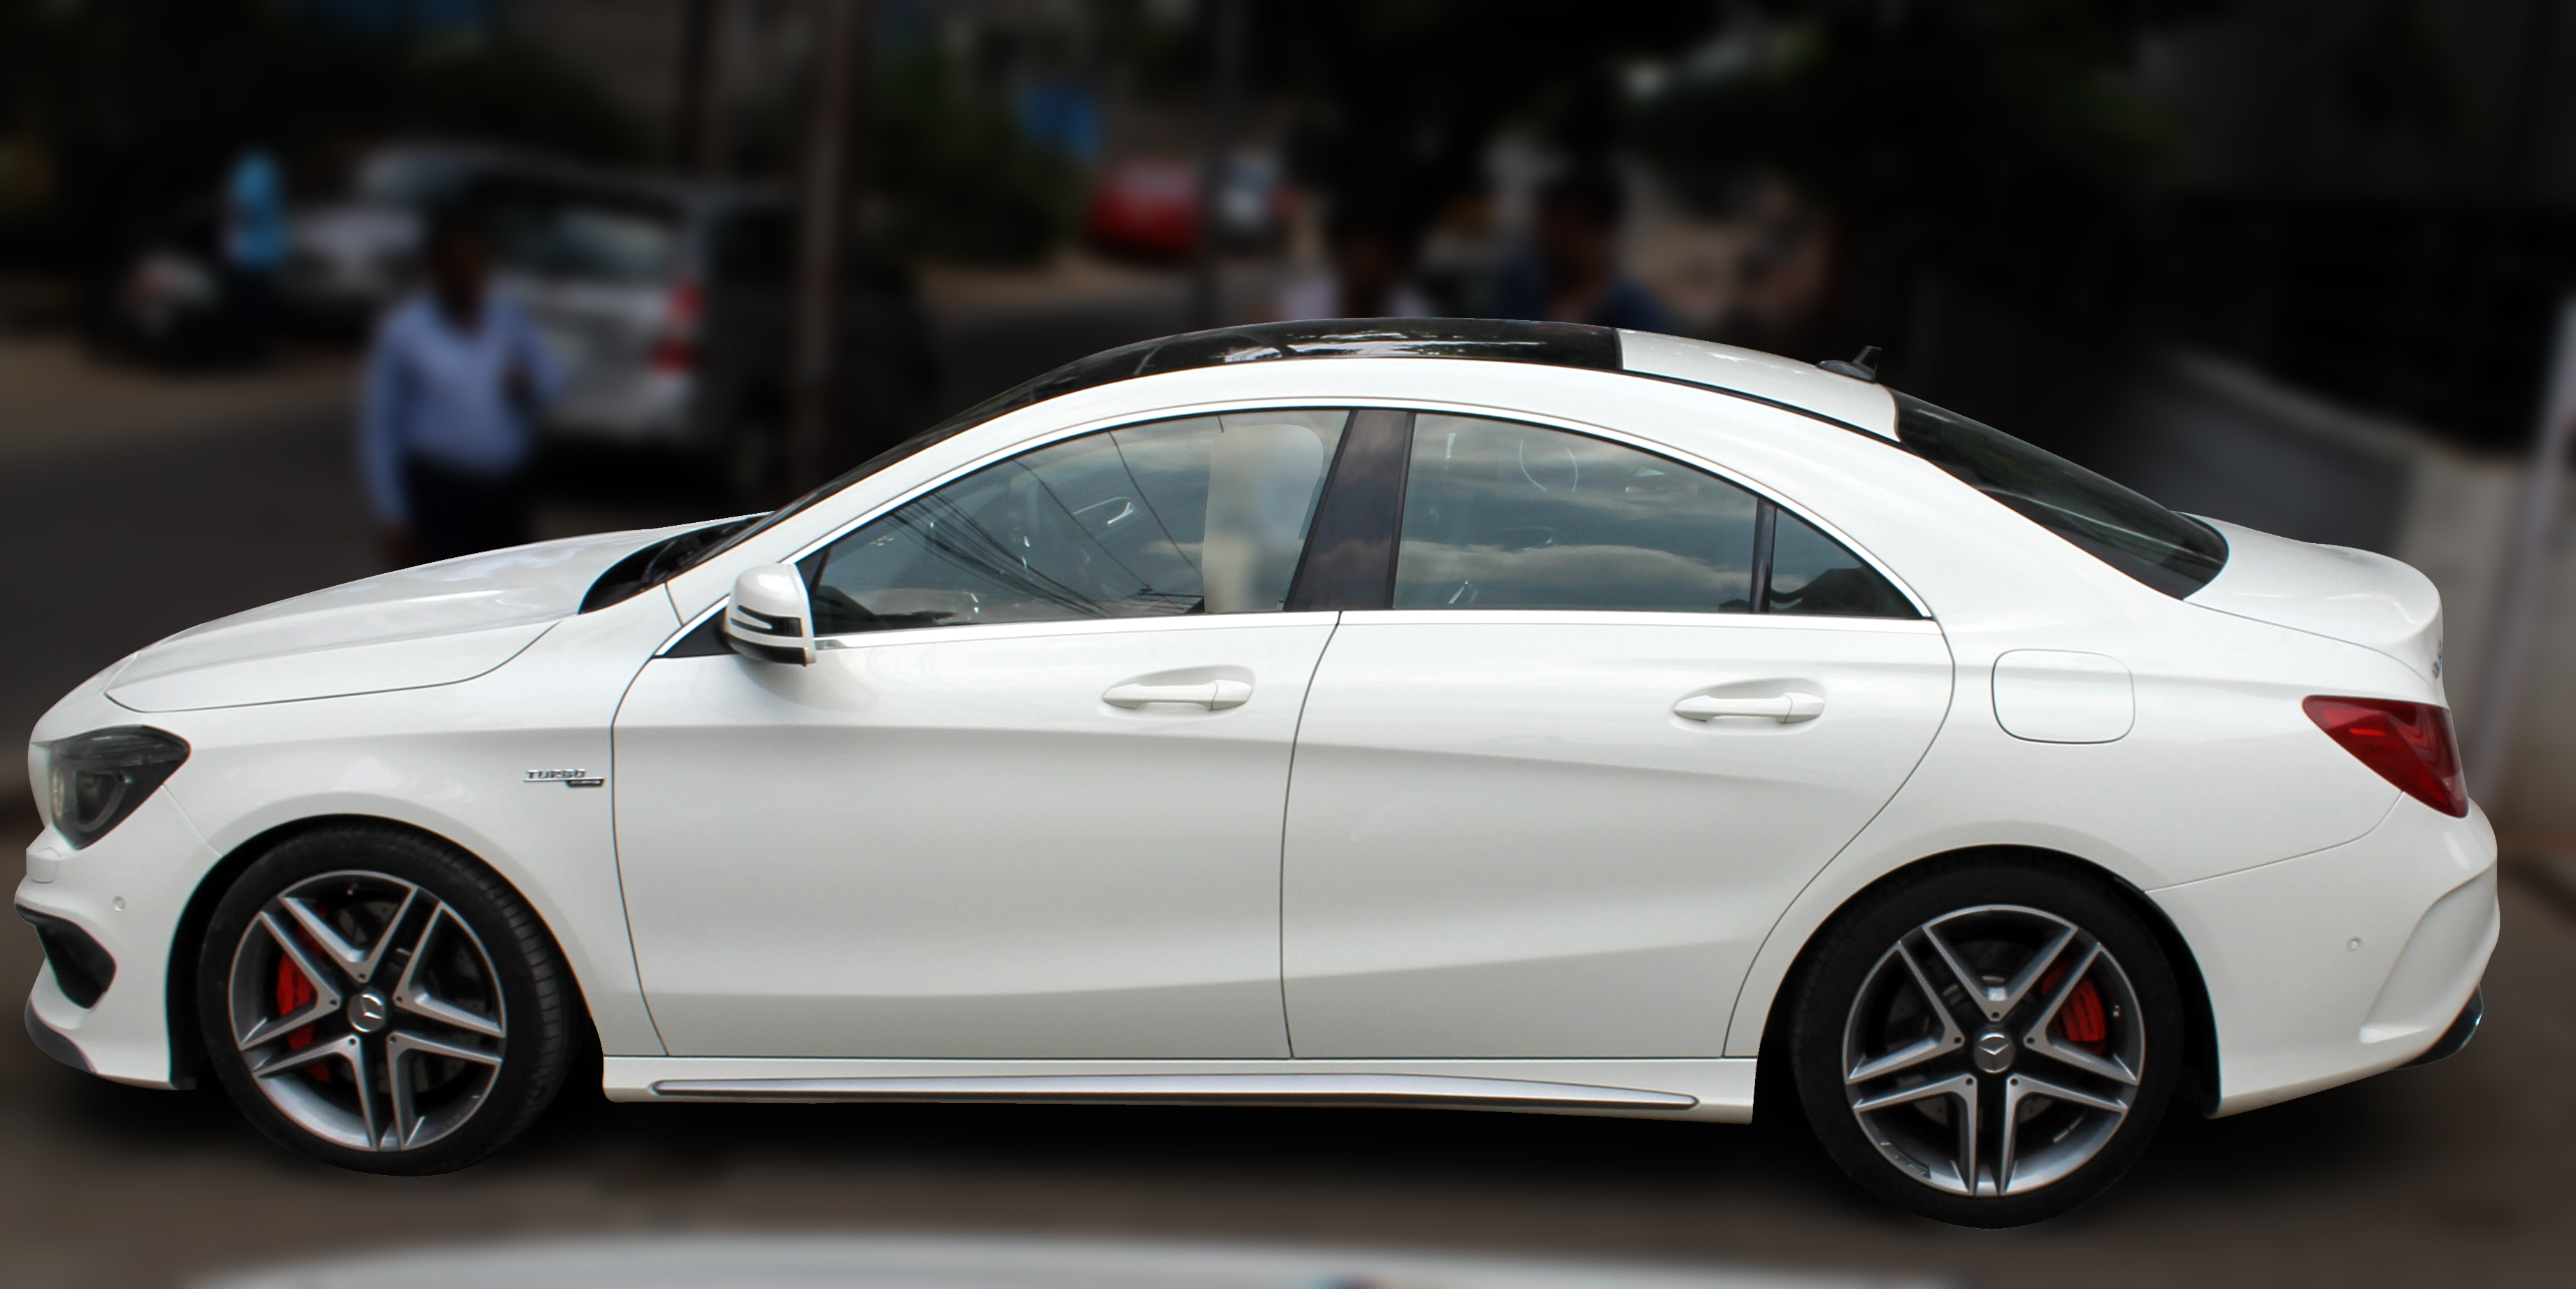 MERCEDES BENZ CLA 45 AMG (WHITE COLOR, PETROL), 2014 model done only 4, 000kms in absolute mint condition... buy now and get one year service pack from us. For further info call 7569696666